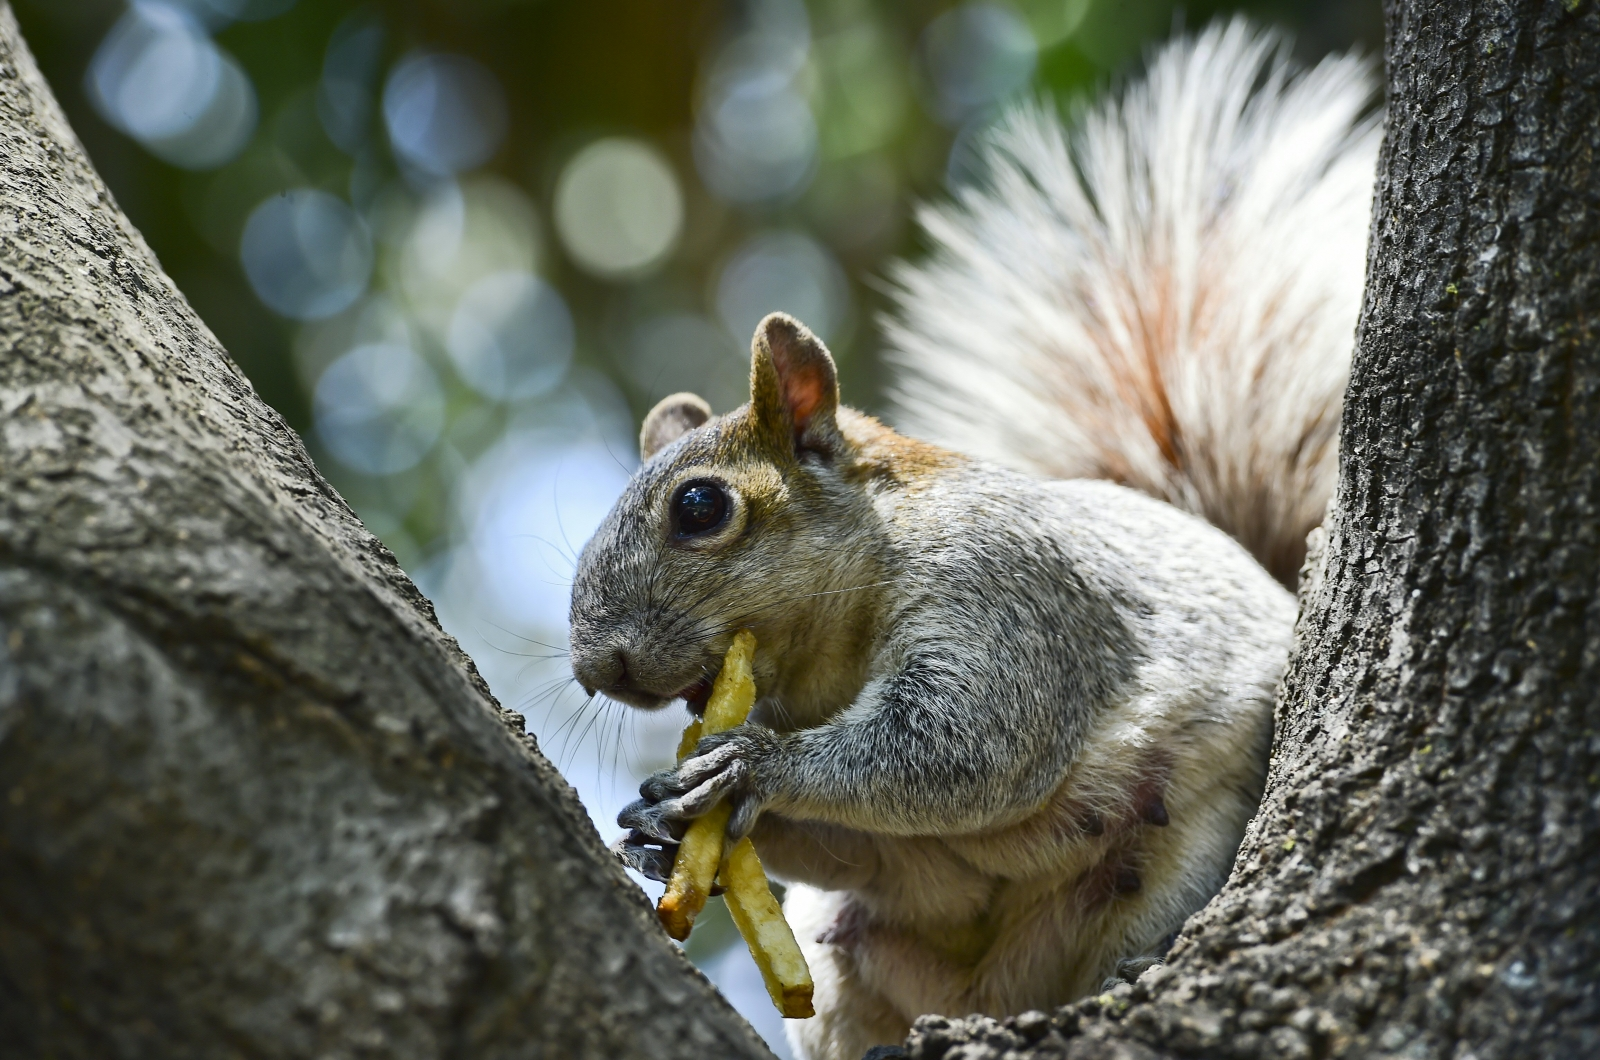 Man told to get rid of his 'emotional support' squirrel or face eviction